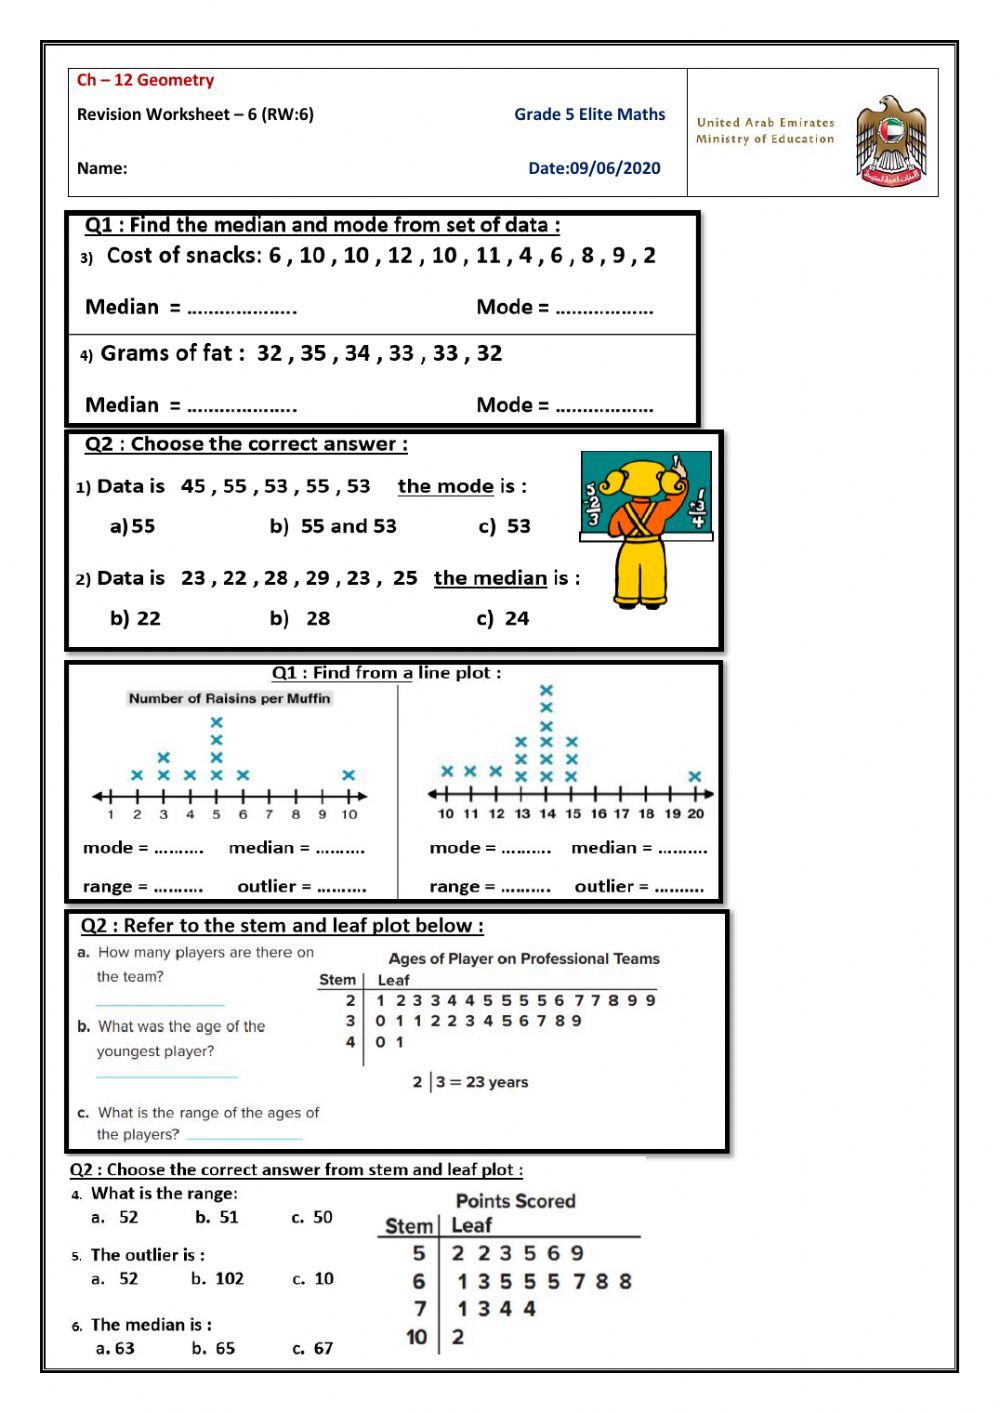 hight resolution of Revision Worksheet on Ch-11 interactive worksheet